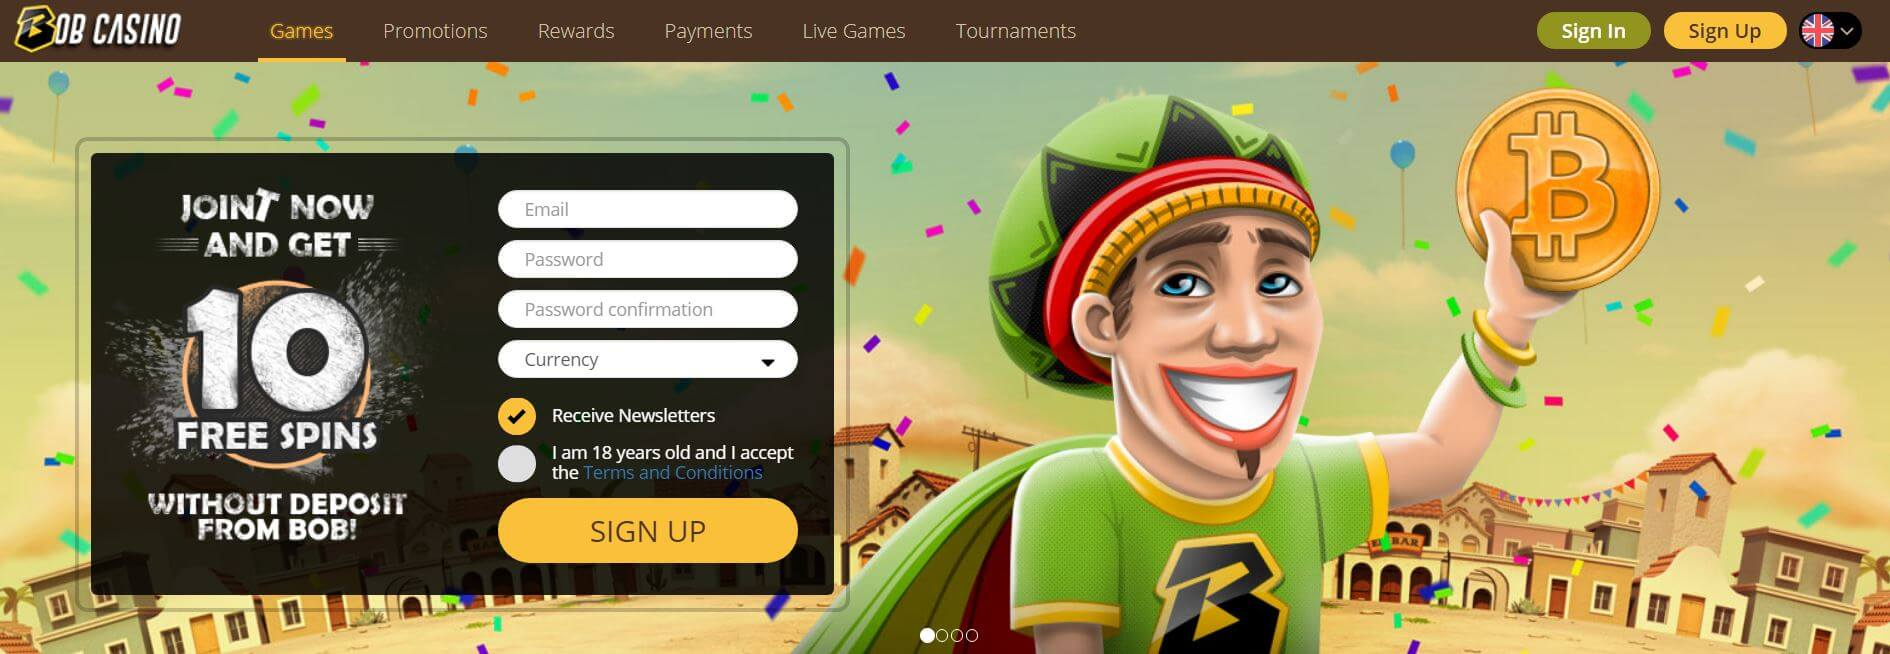 An image of the home page at Bob Casino